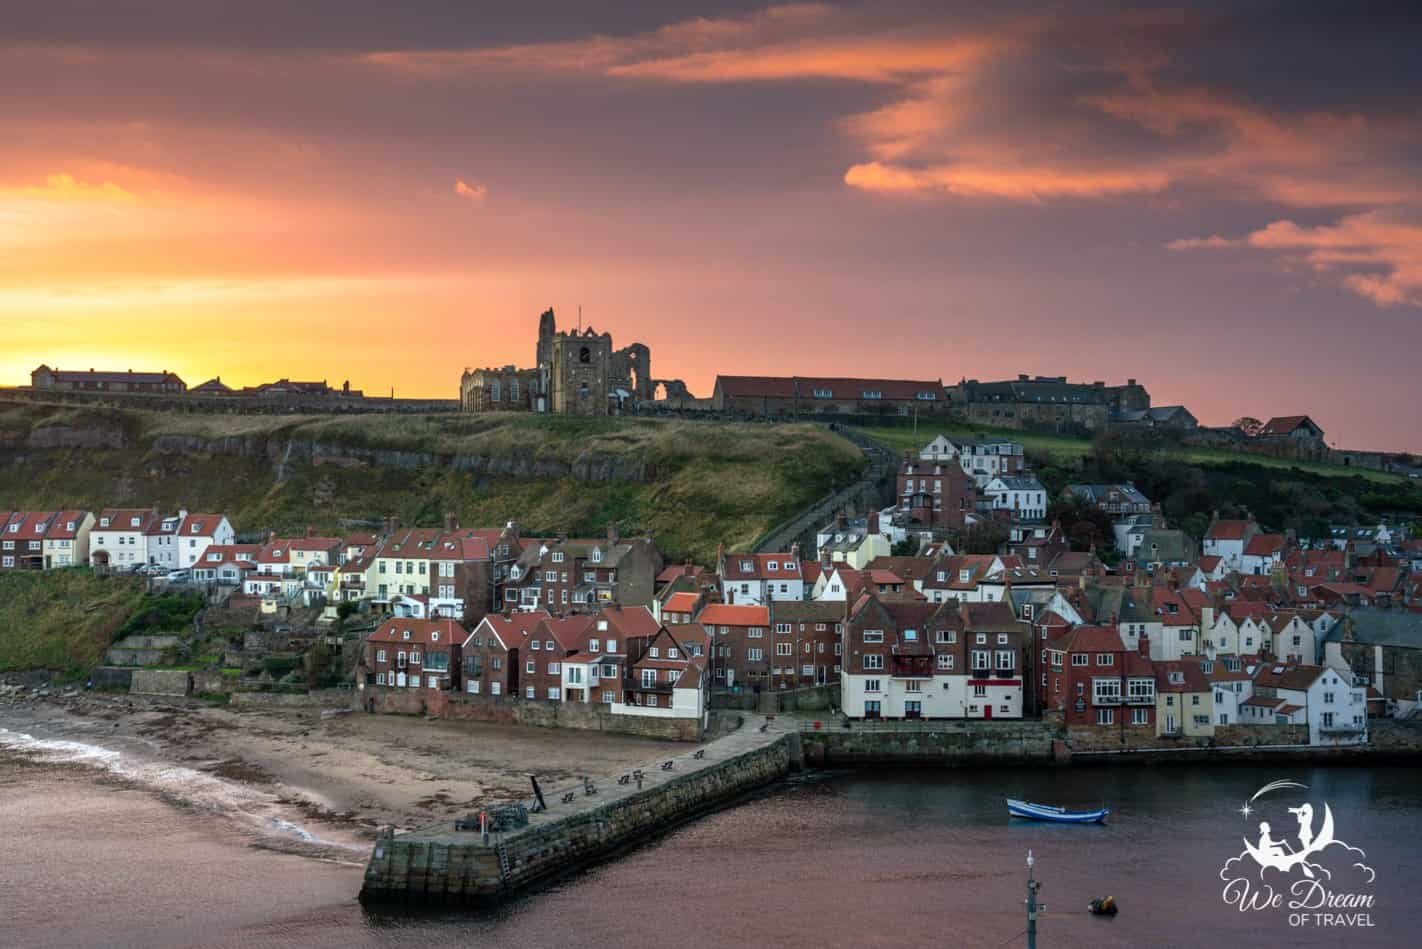 An incredible sunrise over Whitby as seen from East Terrace.